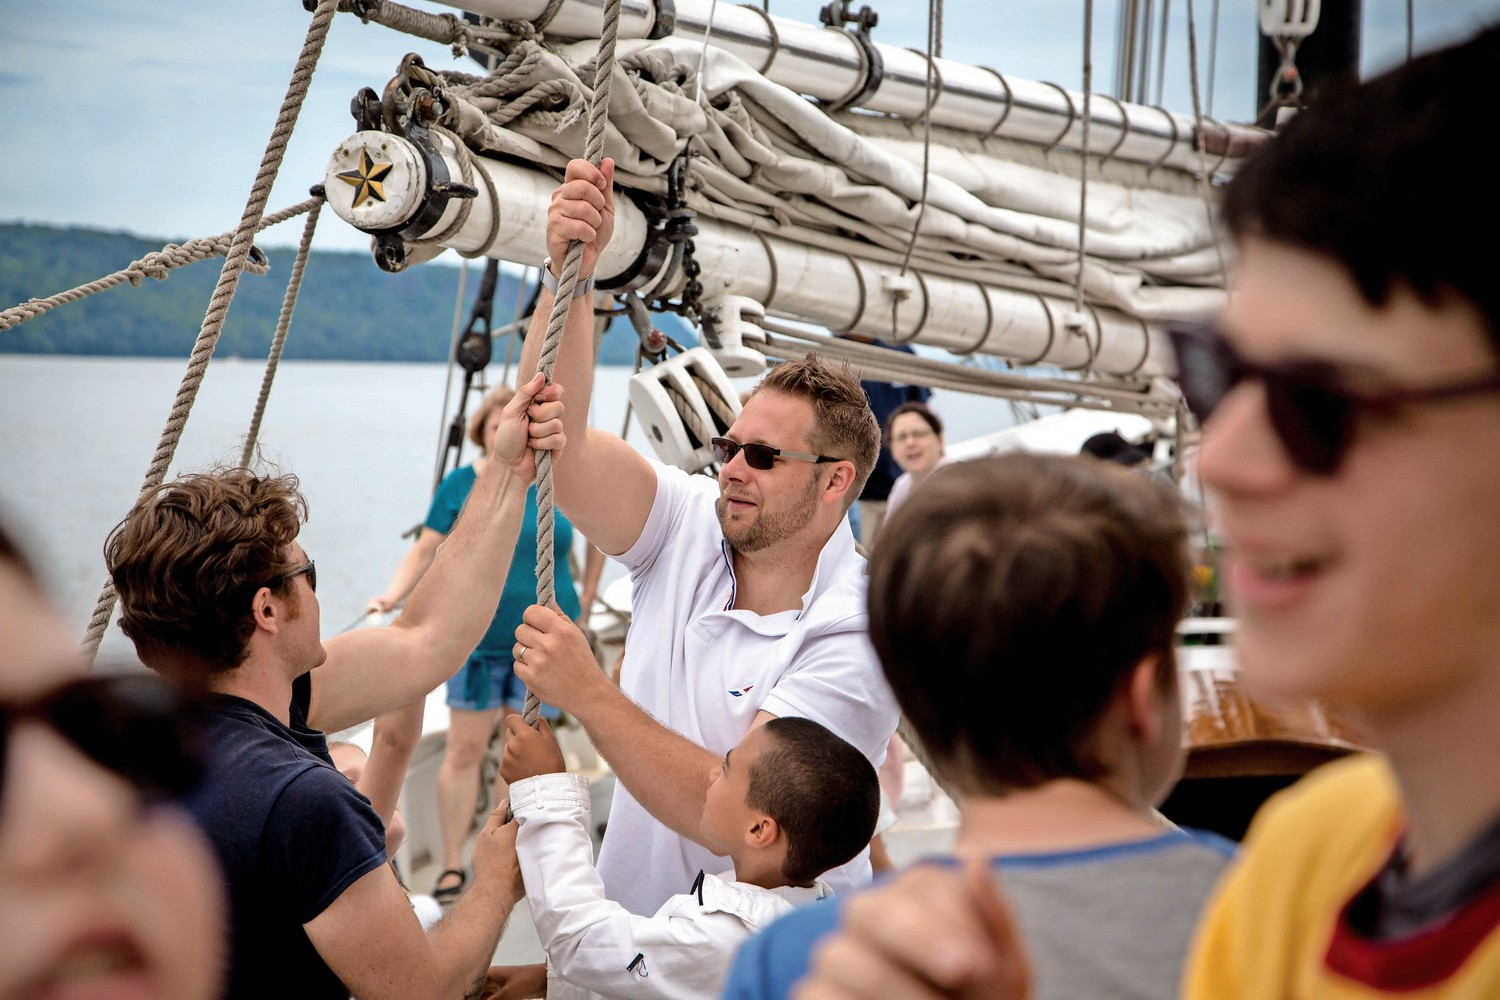 Crew members on the Pioneer schooner show would-be sailors how to raise the sails during RiverFestBX.